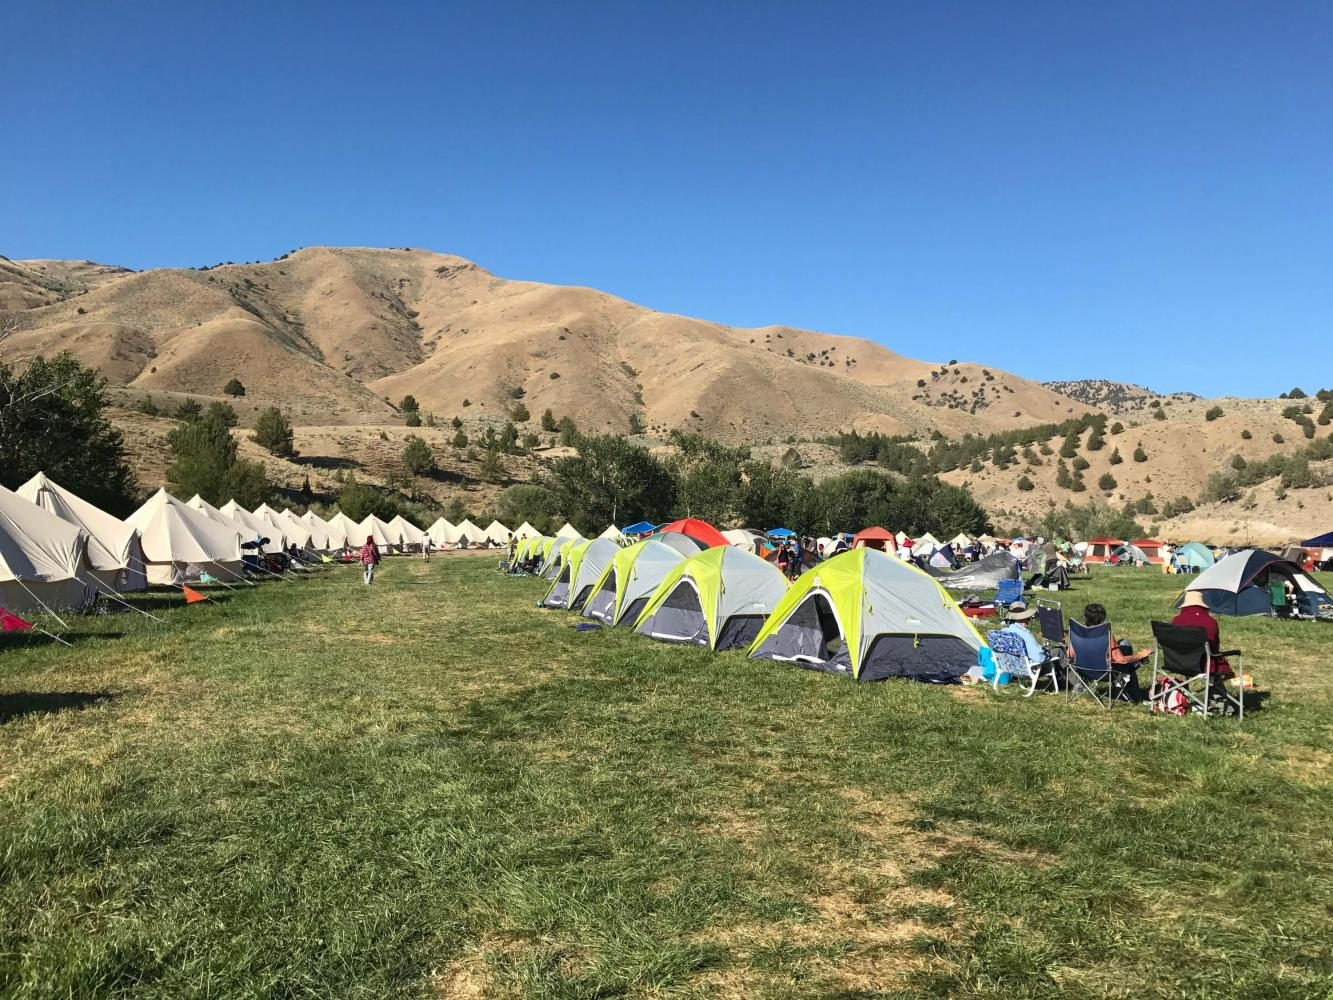 Eclipse tents at an eclipse event in Oregon. Residents and visitors allike gathered to see a total eclipse.